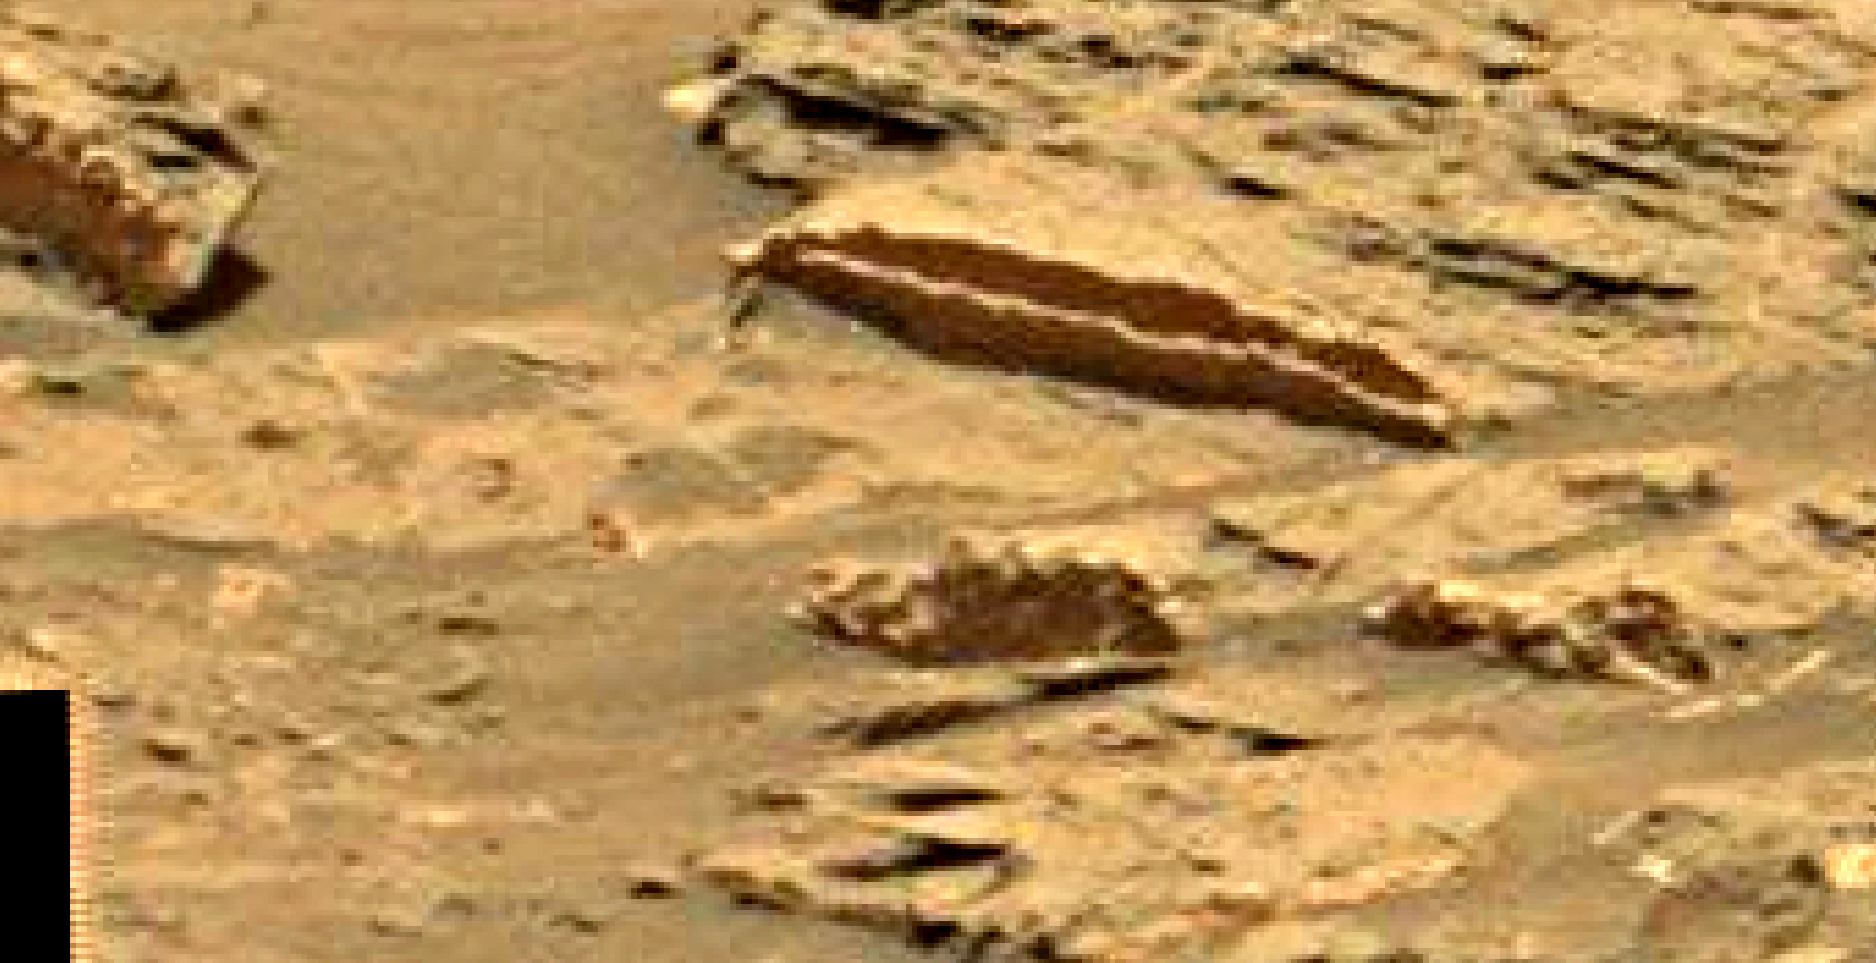 mars sol 1353 anomaly-artifacts 13 was life on mars